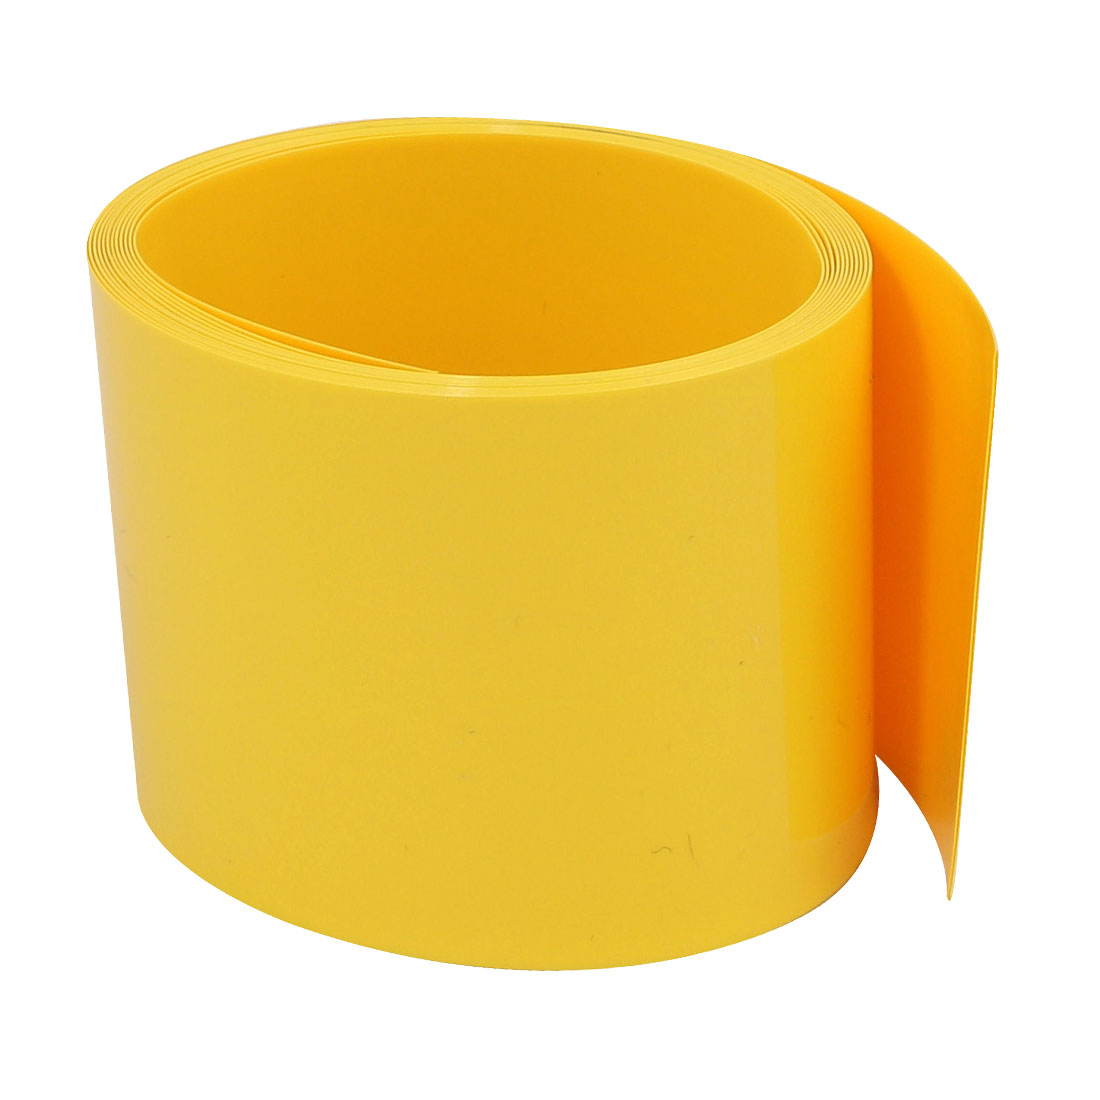 45mm Flat Width 2M Long PVC Heat Shrinkable Tube Yellow for Capacitive Battery